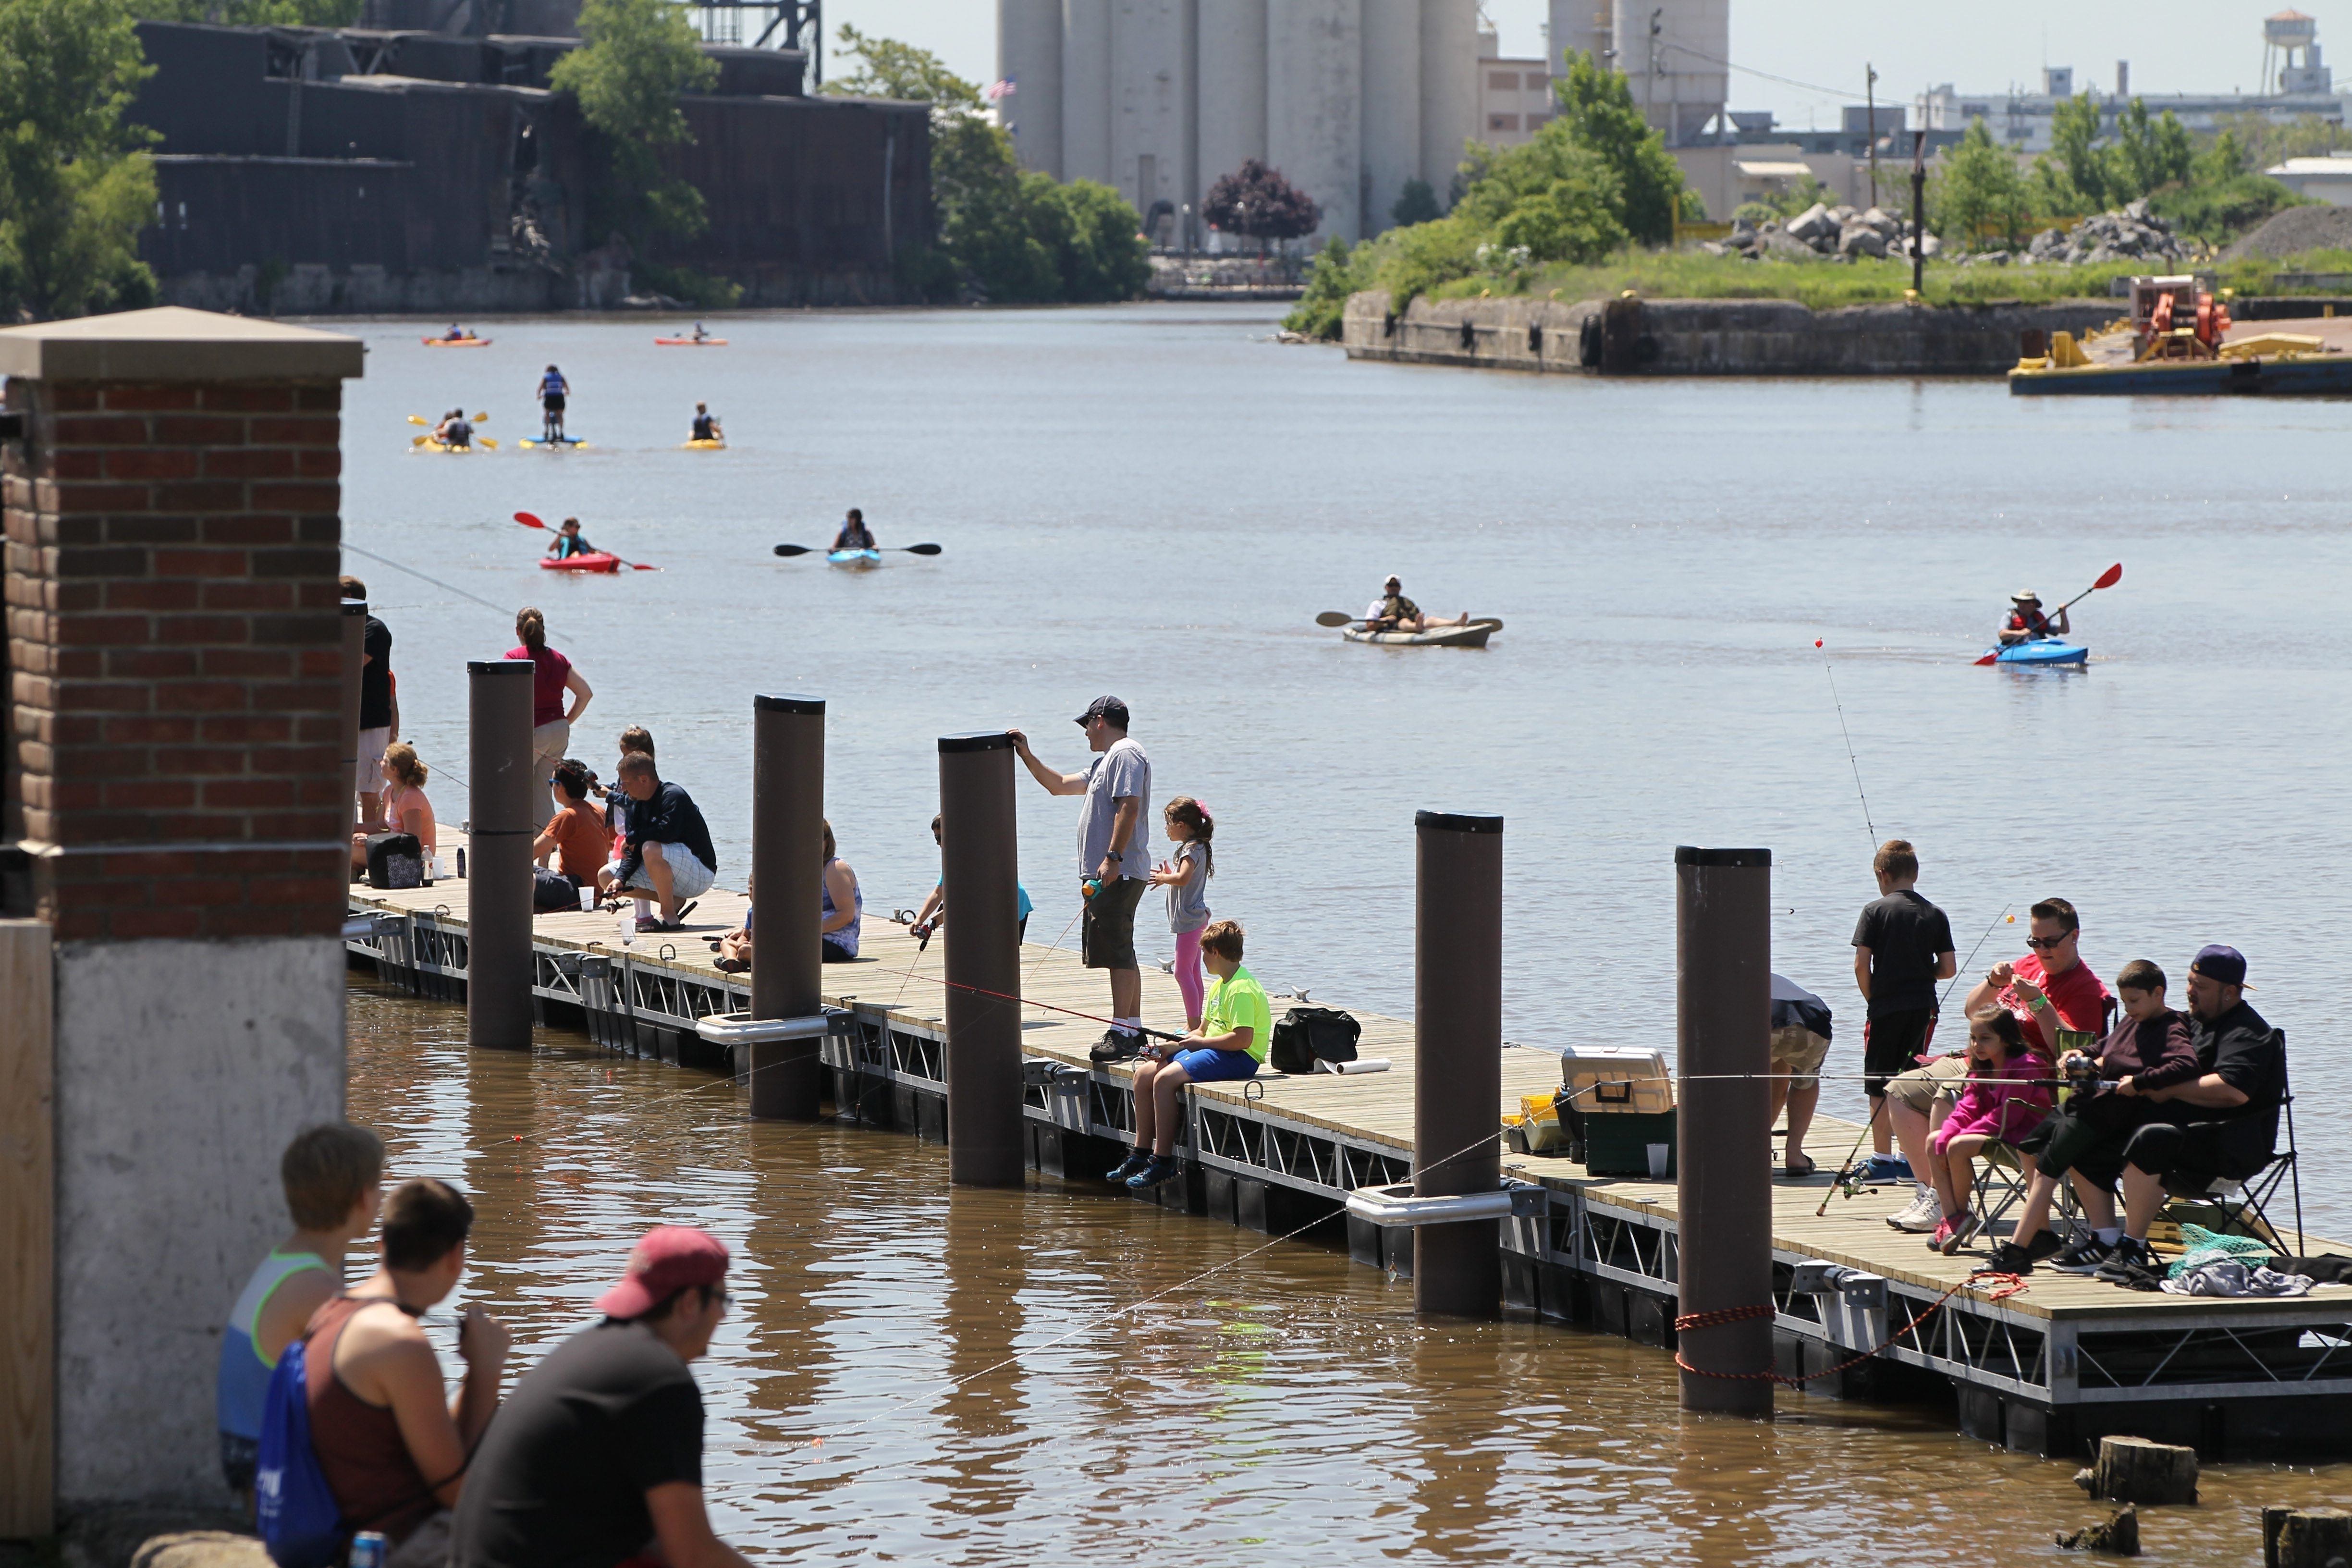 The Valley Community Center offered a free fishing derby at the Buffalo River Fest Park, 249 Ohio st.  in Buffalo,NY on Sunday, June 15, 2014.  (James P. McCoy/ Buffalo News) ¬